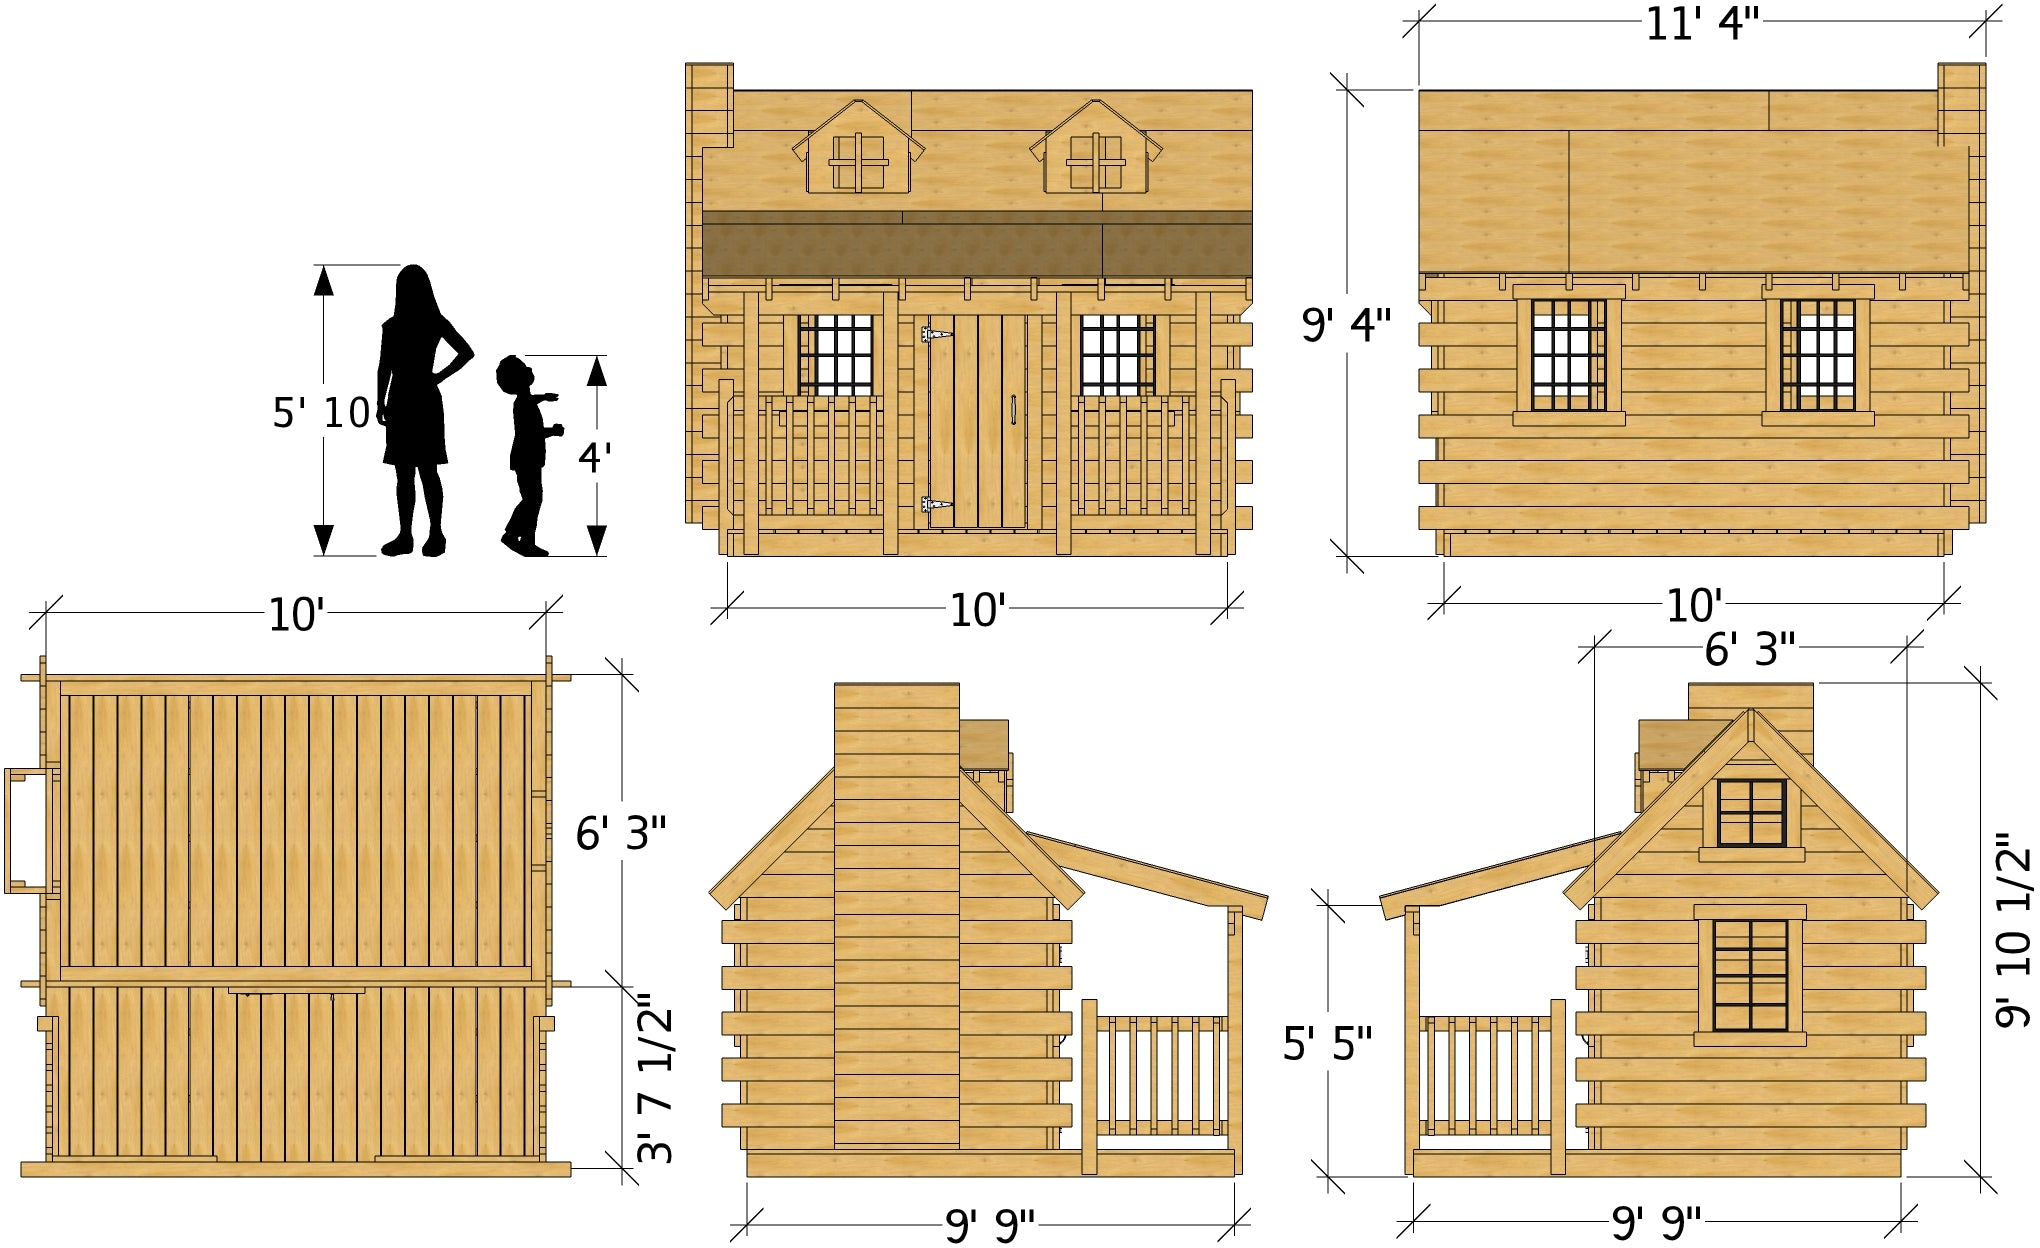 10x10 Log Cabin Playhouse Plan for Kids – Paul's Playhouses